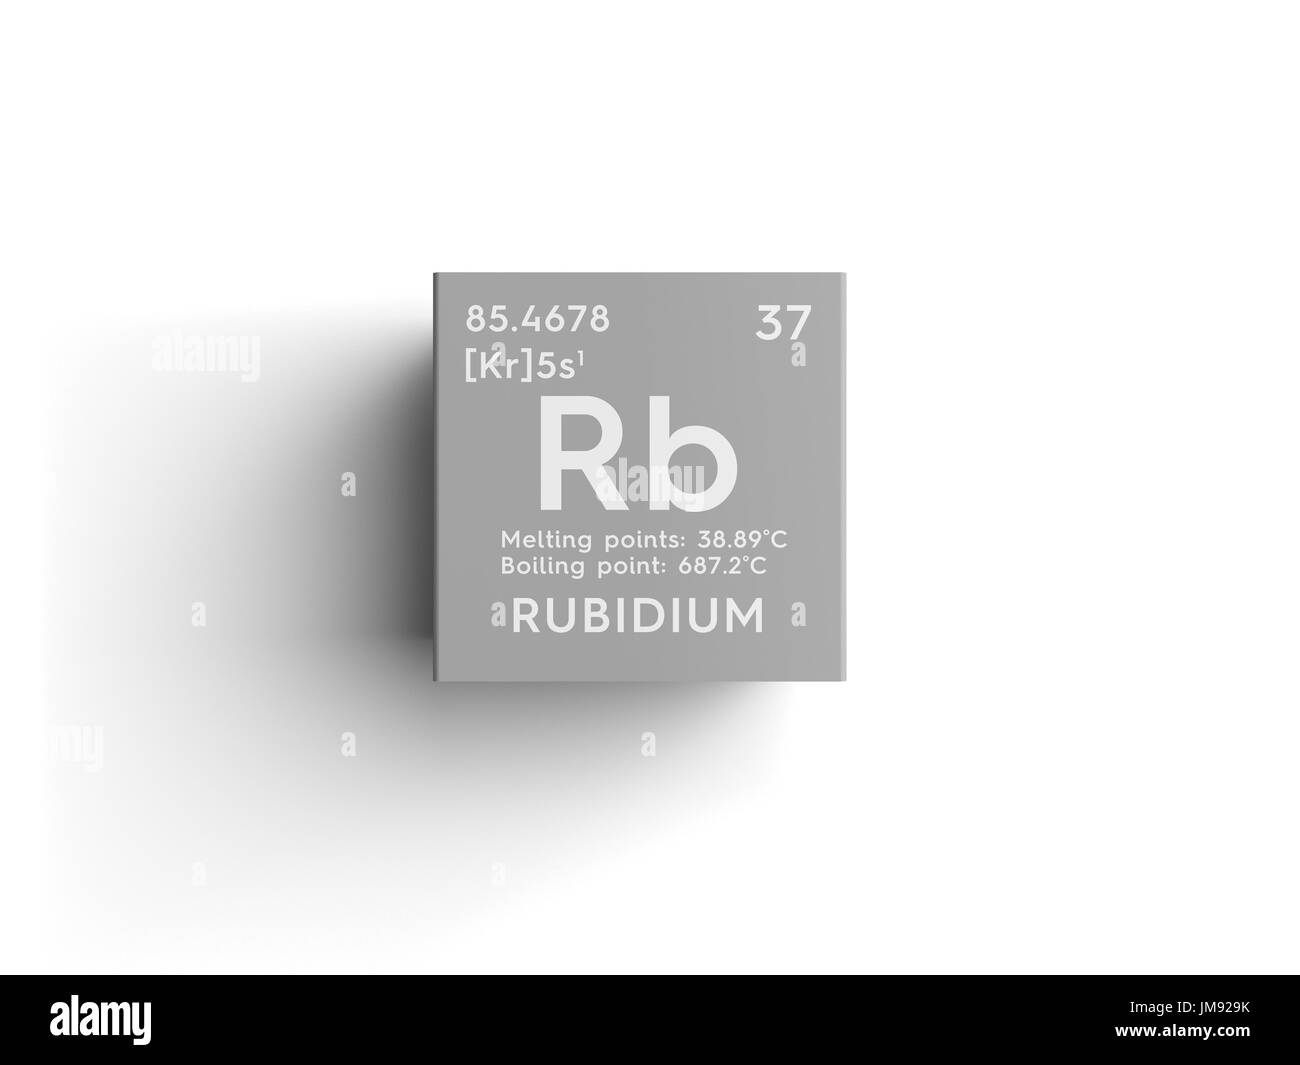 Rubidium alkali metals chemical element of mendeleevs periodic alkali metals chemical element of mendeleevs periodic table rubidium in square cube creative concept urtaz Image collections